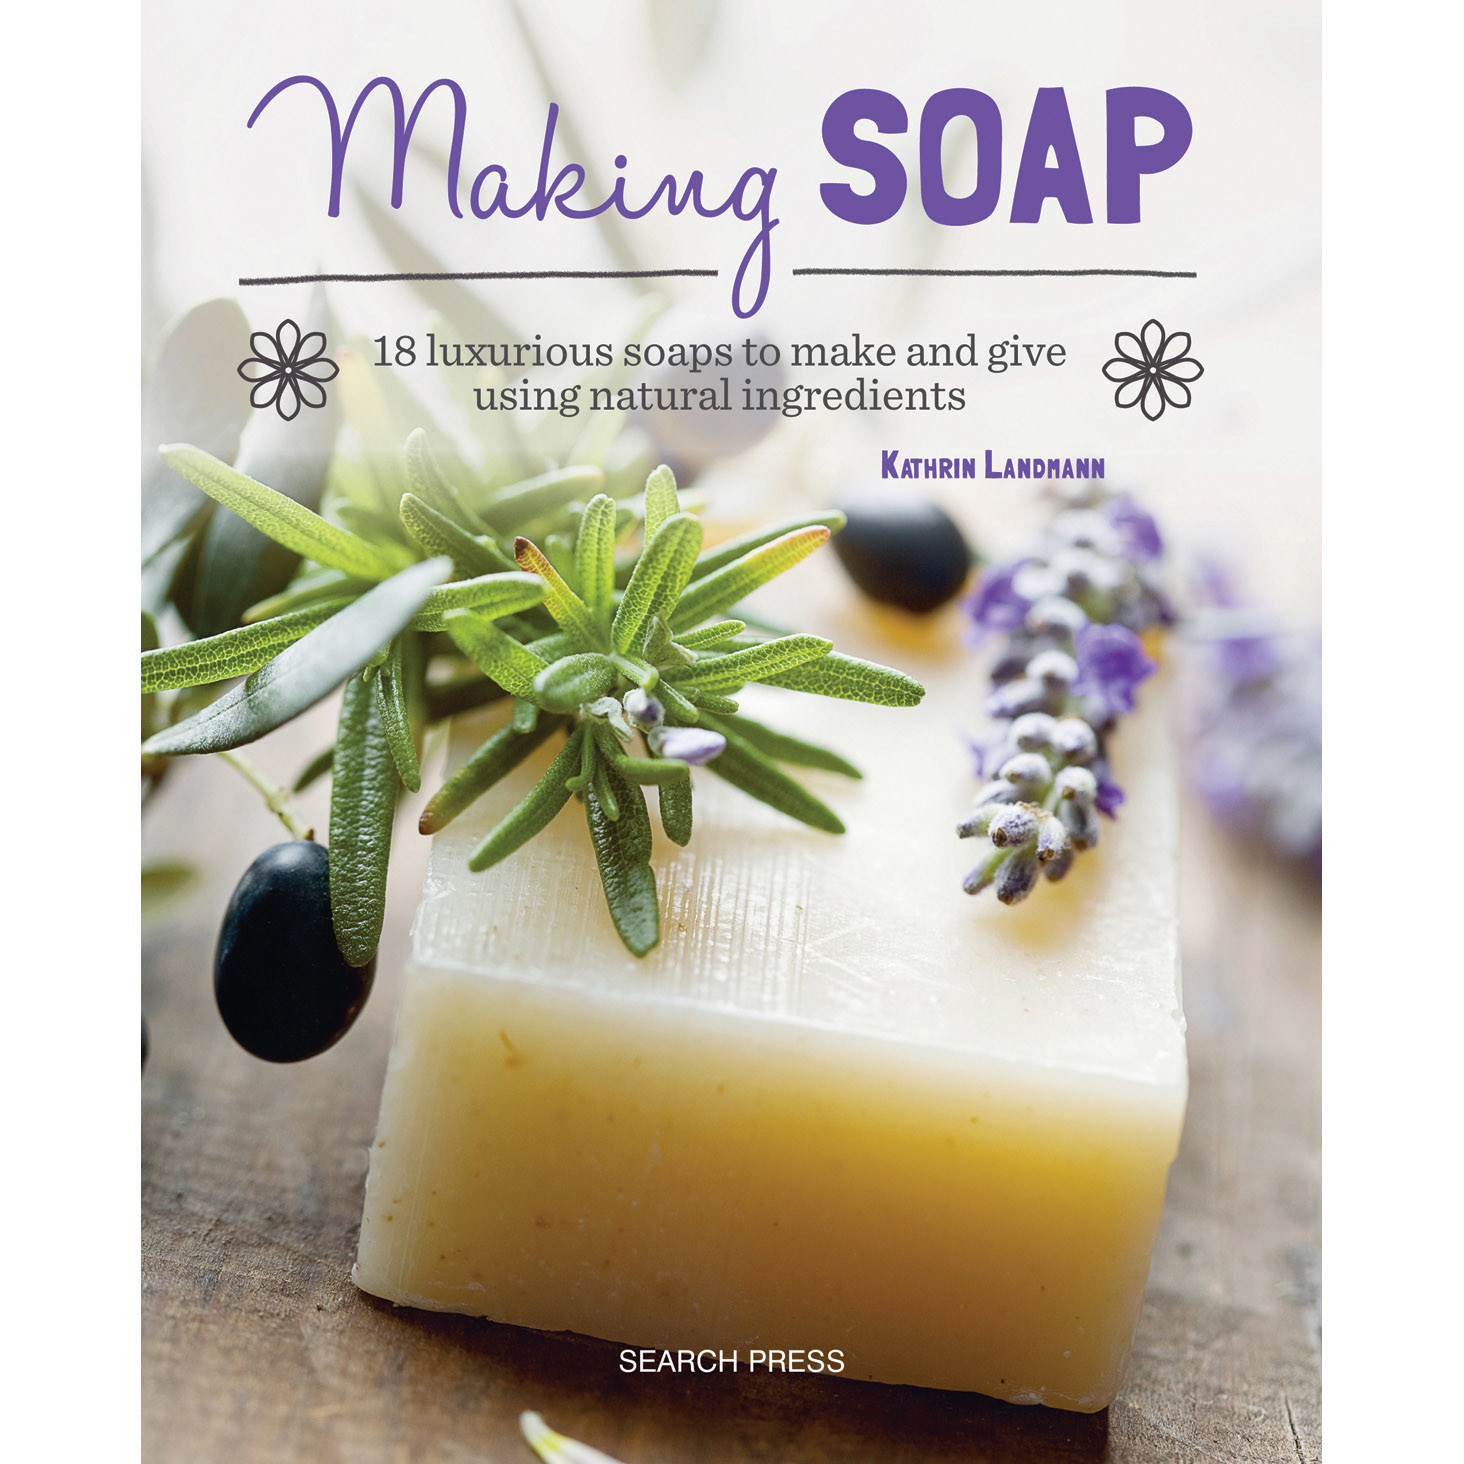 MAKING SOAP by KATHRIN LANDMANN